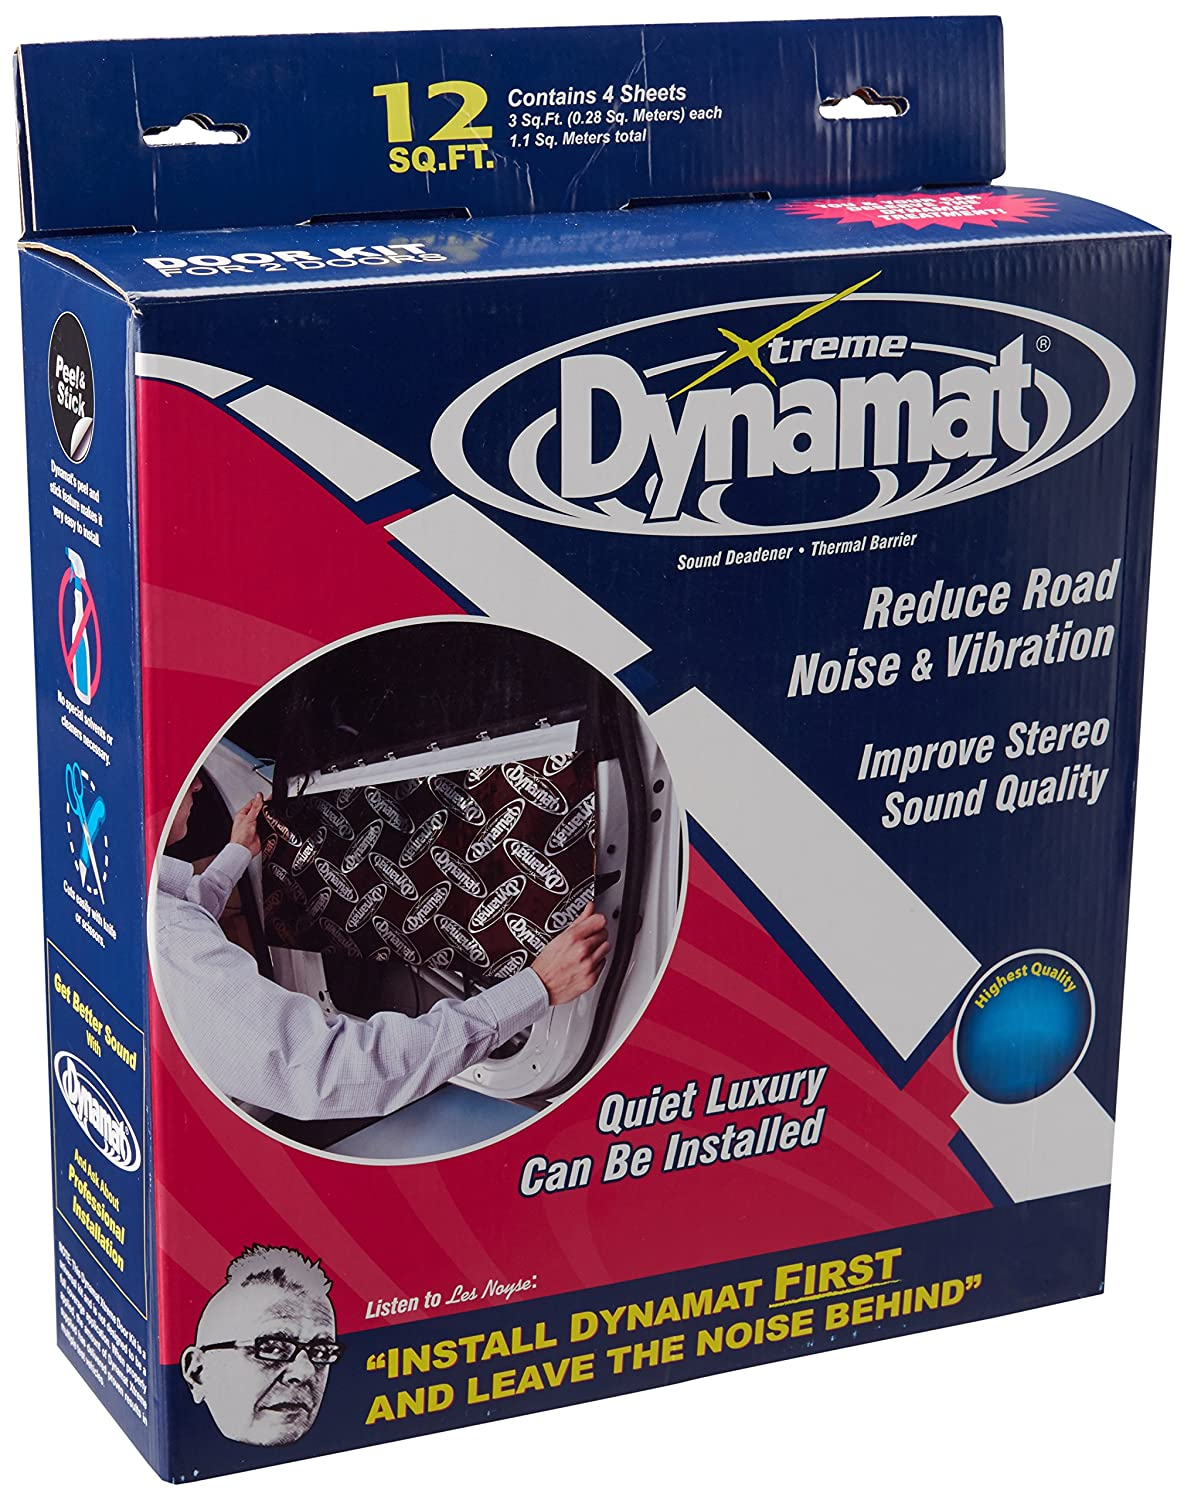 Dynamat 10435 12' x 36' x 0.067' Thick Self-Adhesive Sound Deadener with Xtreme Door Kit Dynamat 10435 12 x 36 x 0.067 Thick Self-Adhesive Sound Deadener with Xtreme Door Kit